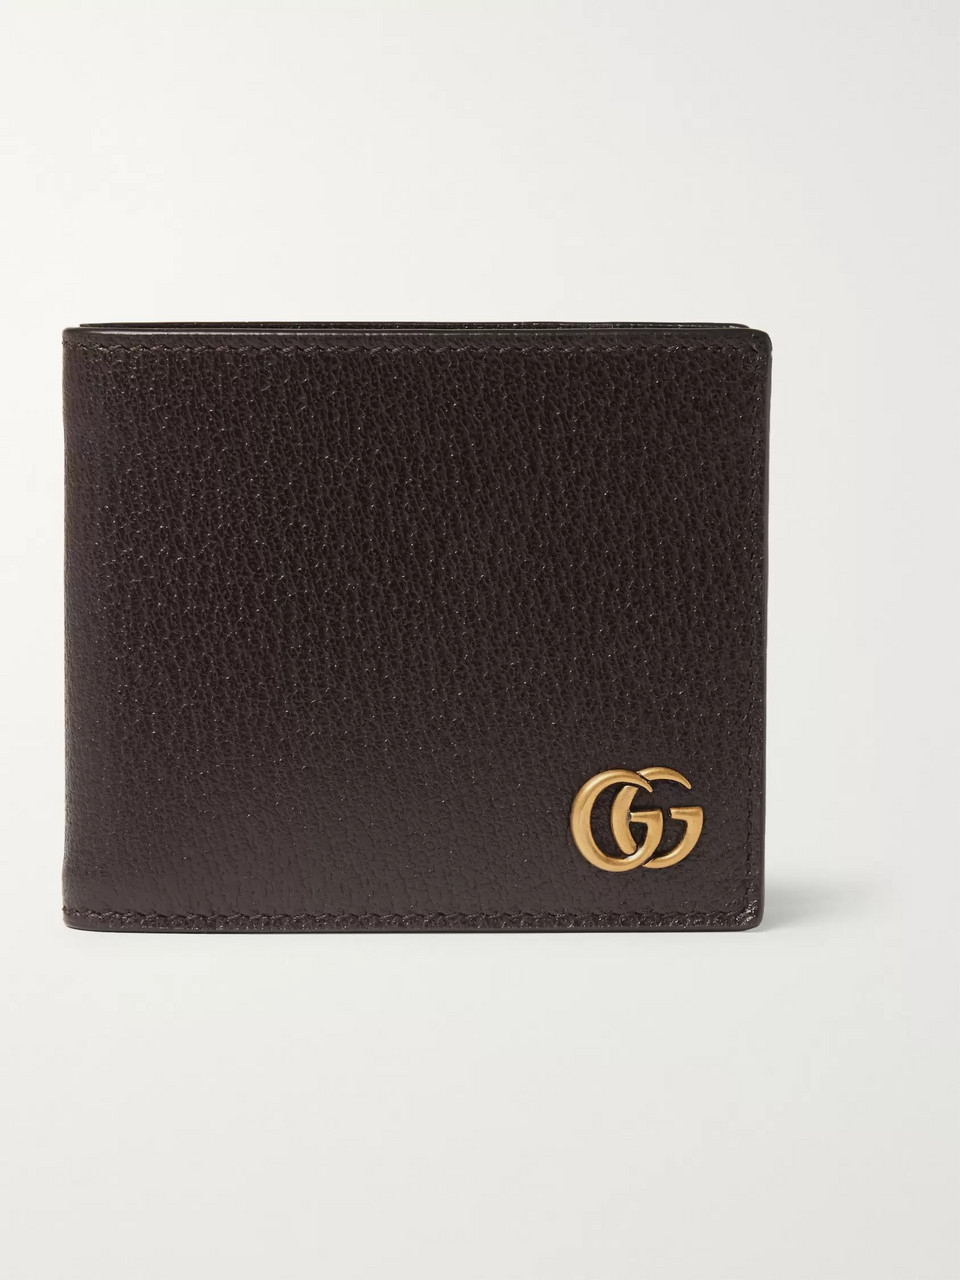 Gucci Textured-Leather Billfold Wallet